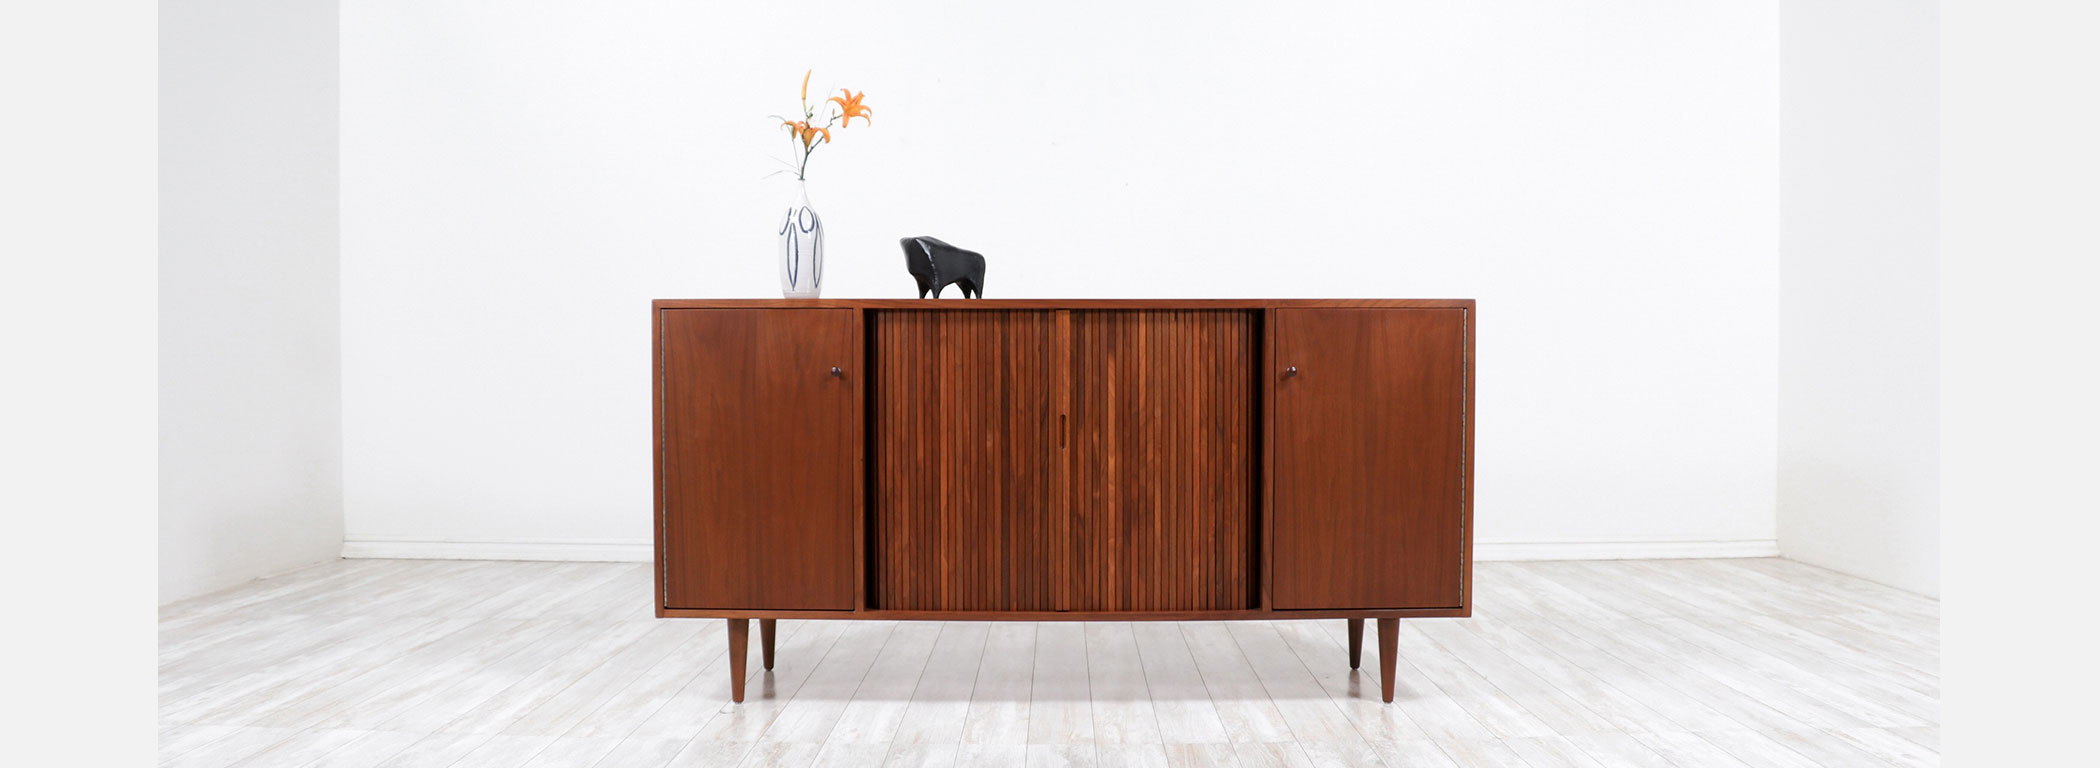 Milo Baughman Tambour-Door Credenza with Colored Drawers for Glenn of California Image